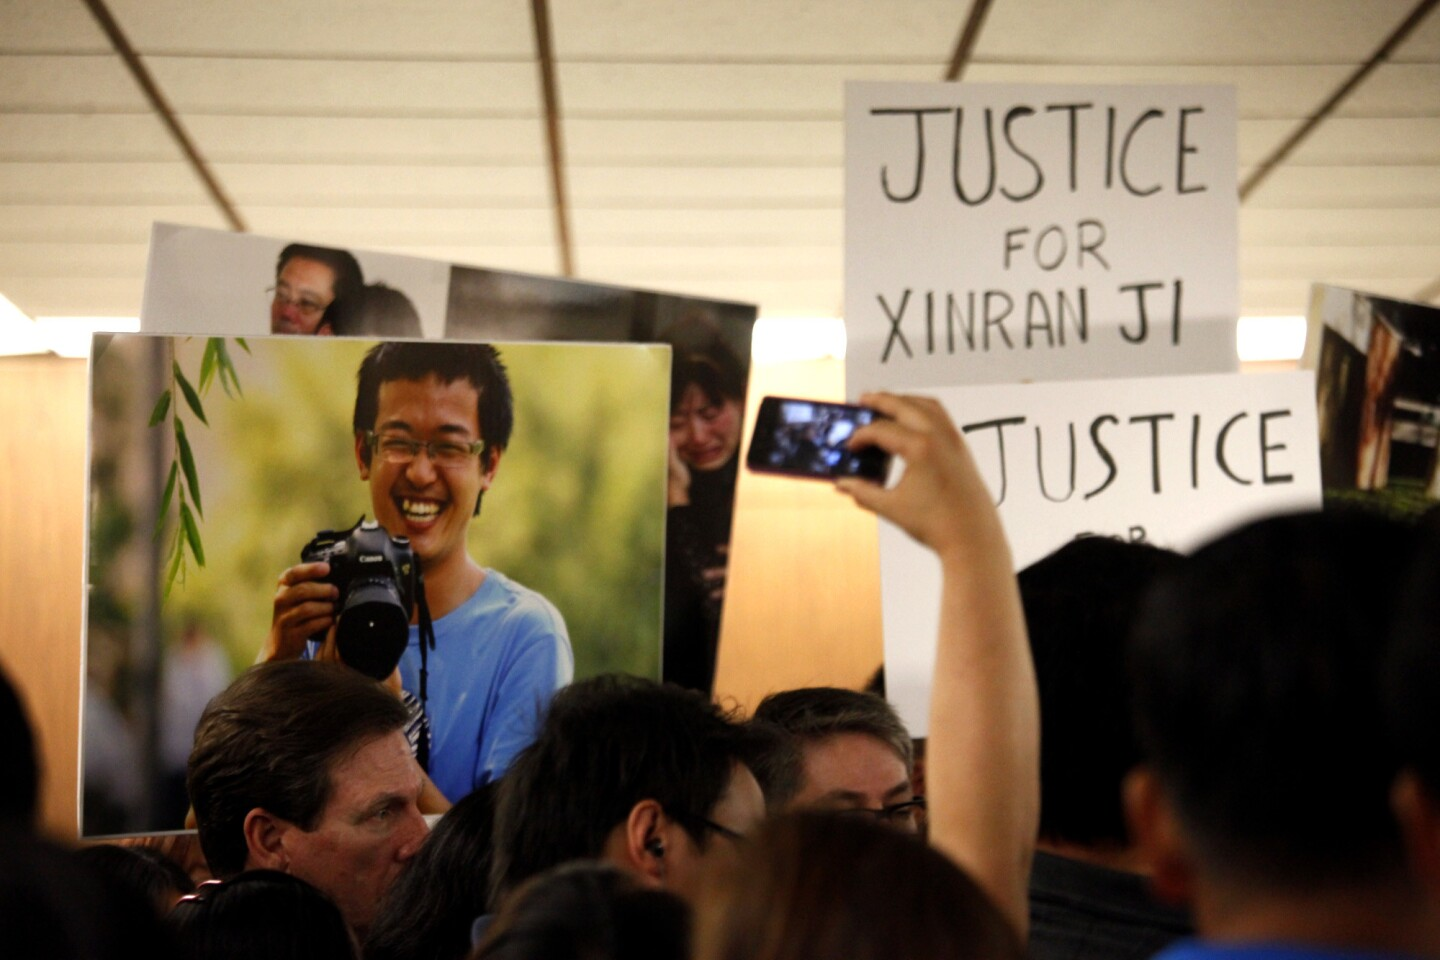 Supporters of slain USC student Xinran Ji, in photo, gather for a press conference after the arraignment of Jonathan Del Carmen, Andrew Garcia, Alberto Ochoa and Alejandra Guerrero in downtown Los Angeles.